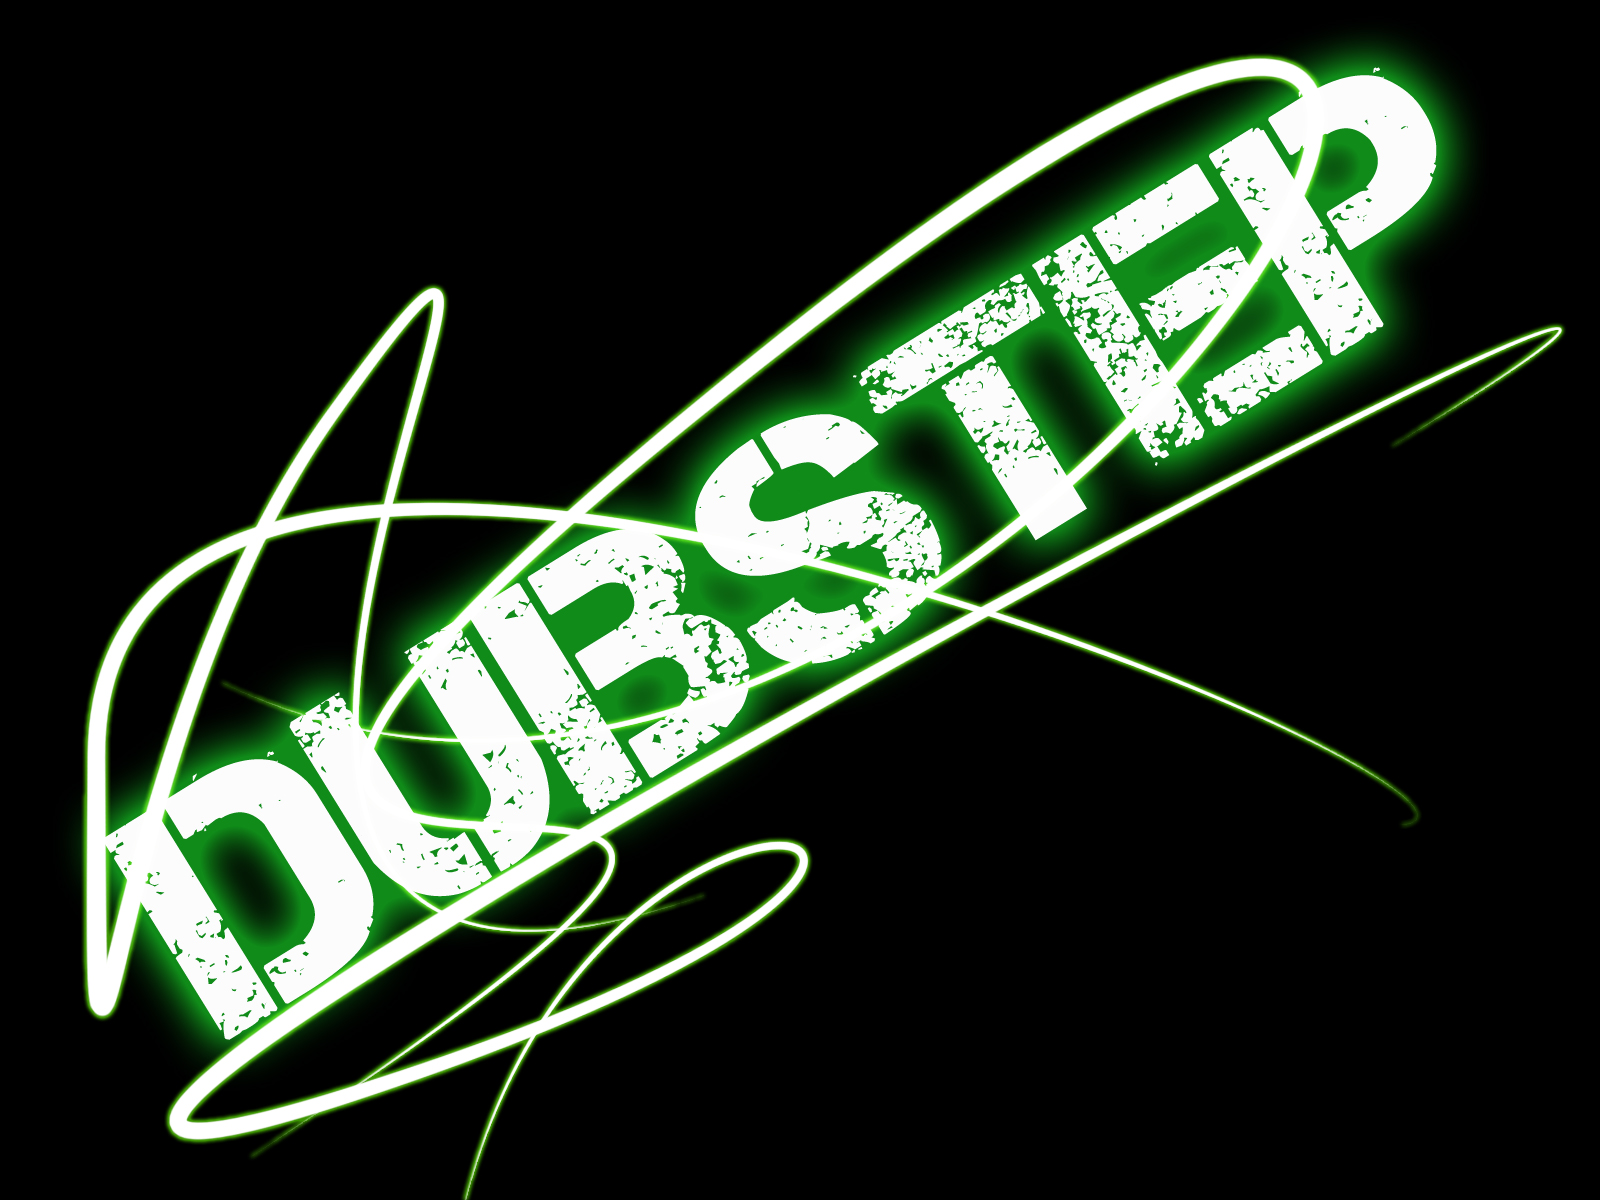 Dubstep logos favourites by tools193 on deviantart wajt be 49 16 dubstep wallpaper by zaigwast thecheapjerseys Choice Image